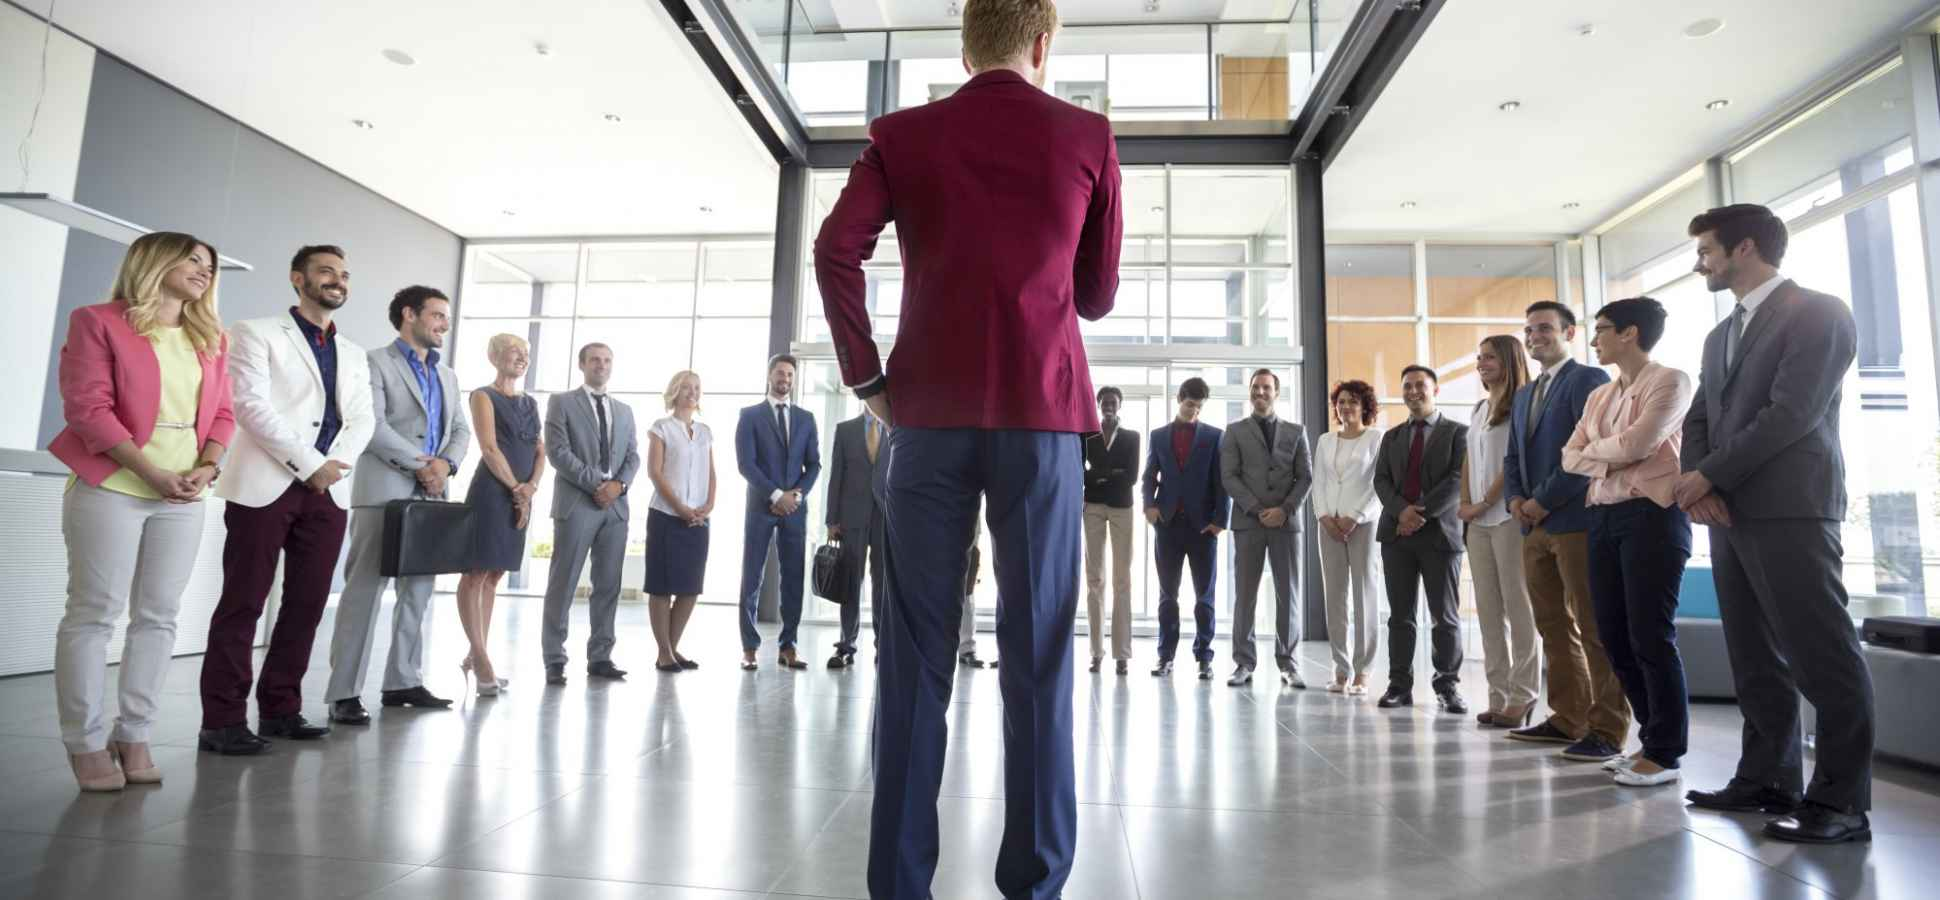 6 Things Every Manager Wants from Employees